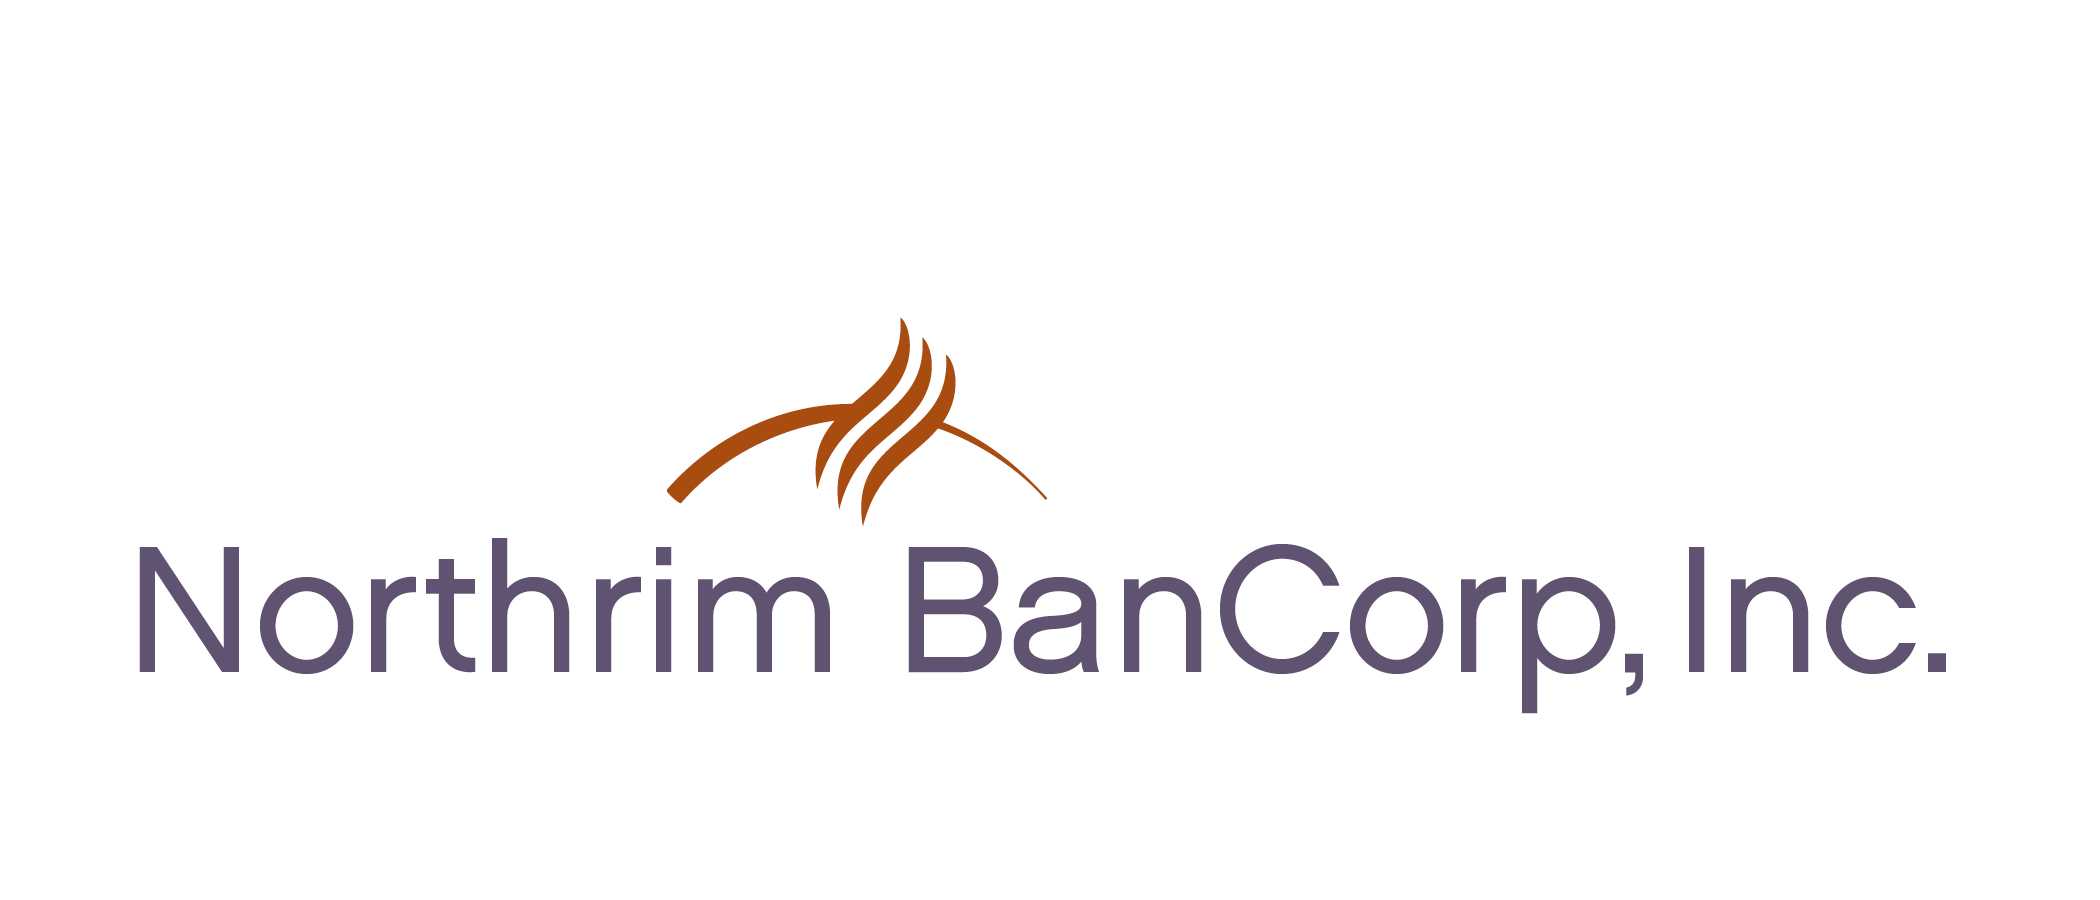 Northrim BanCorp, Inc. new logo